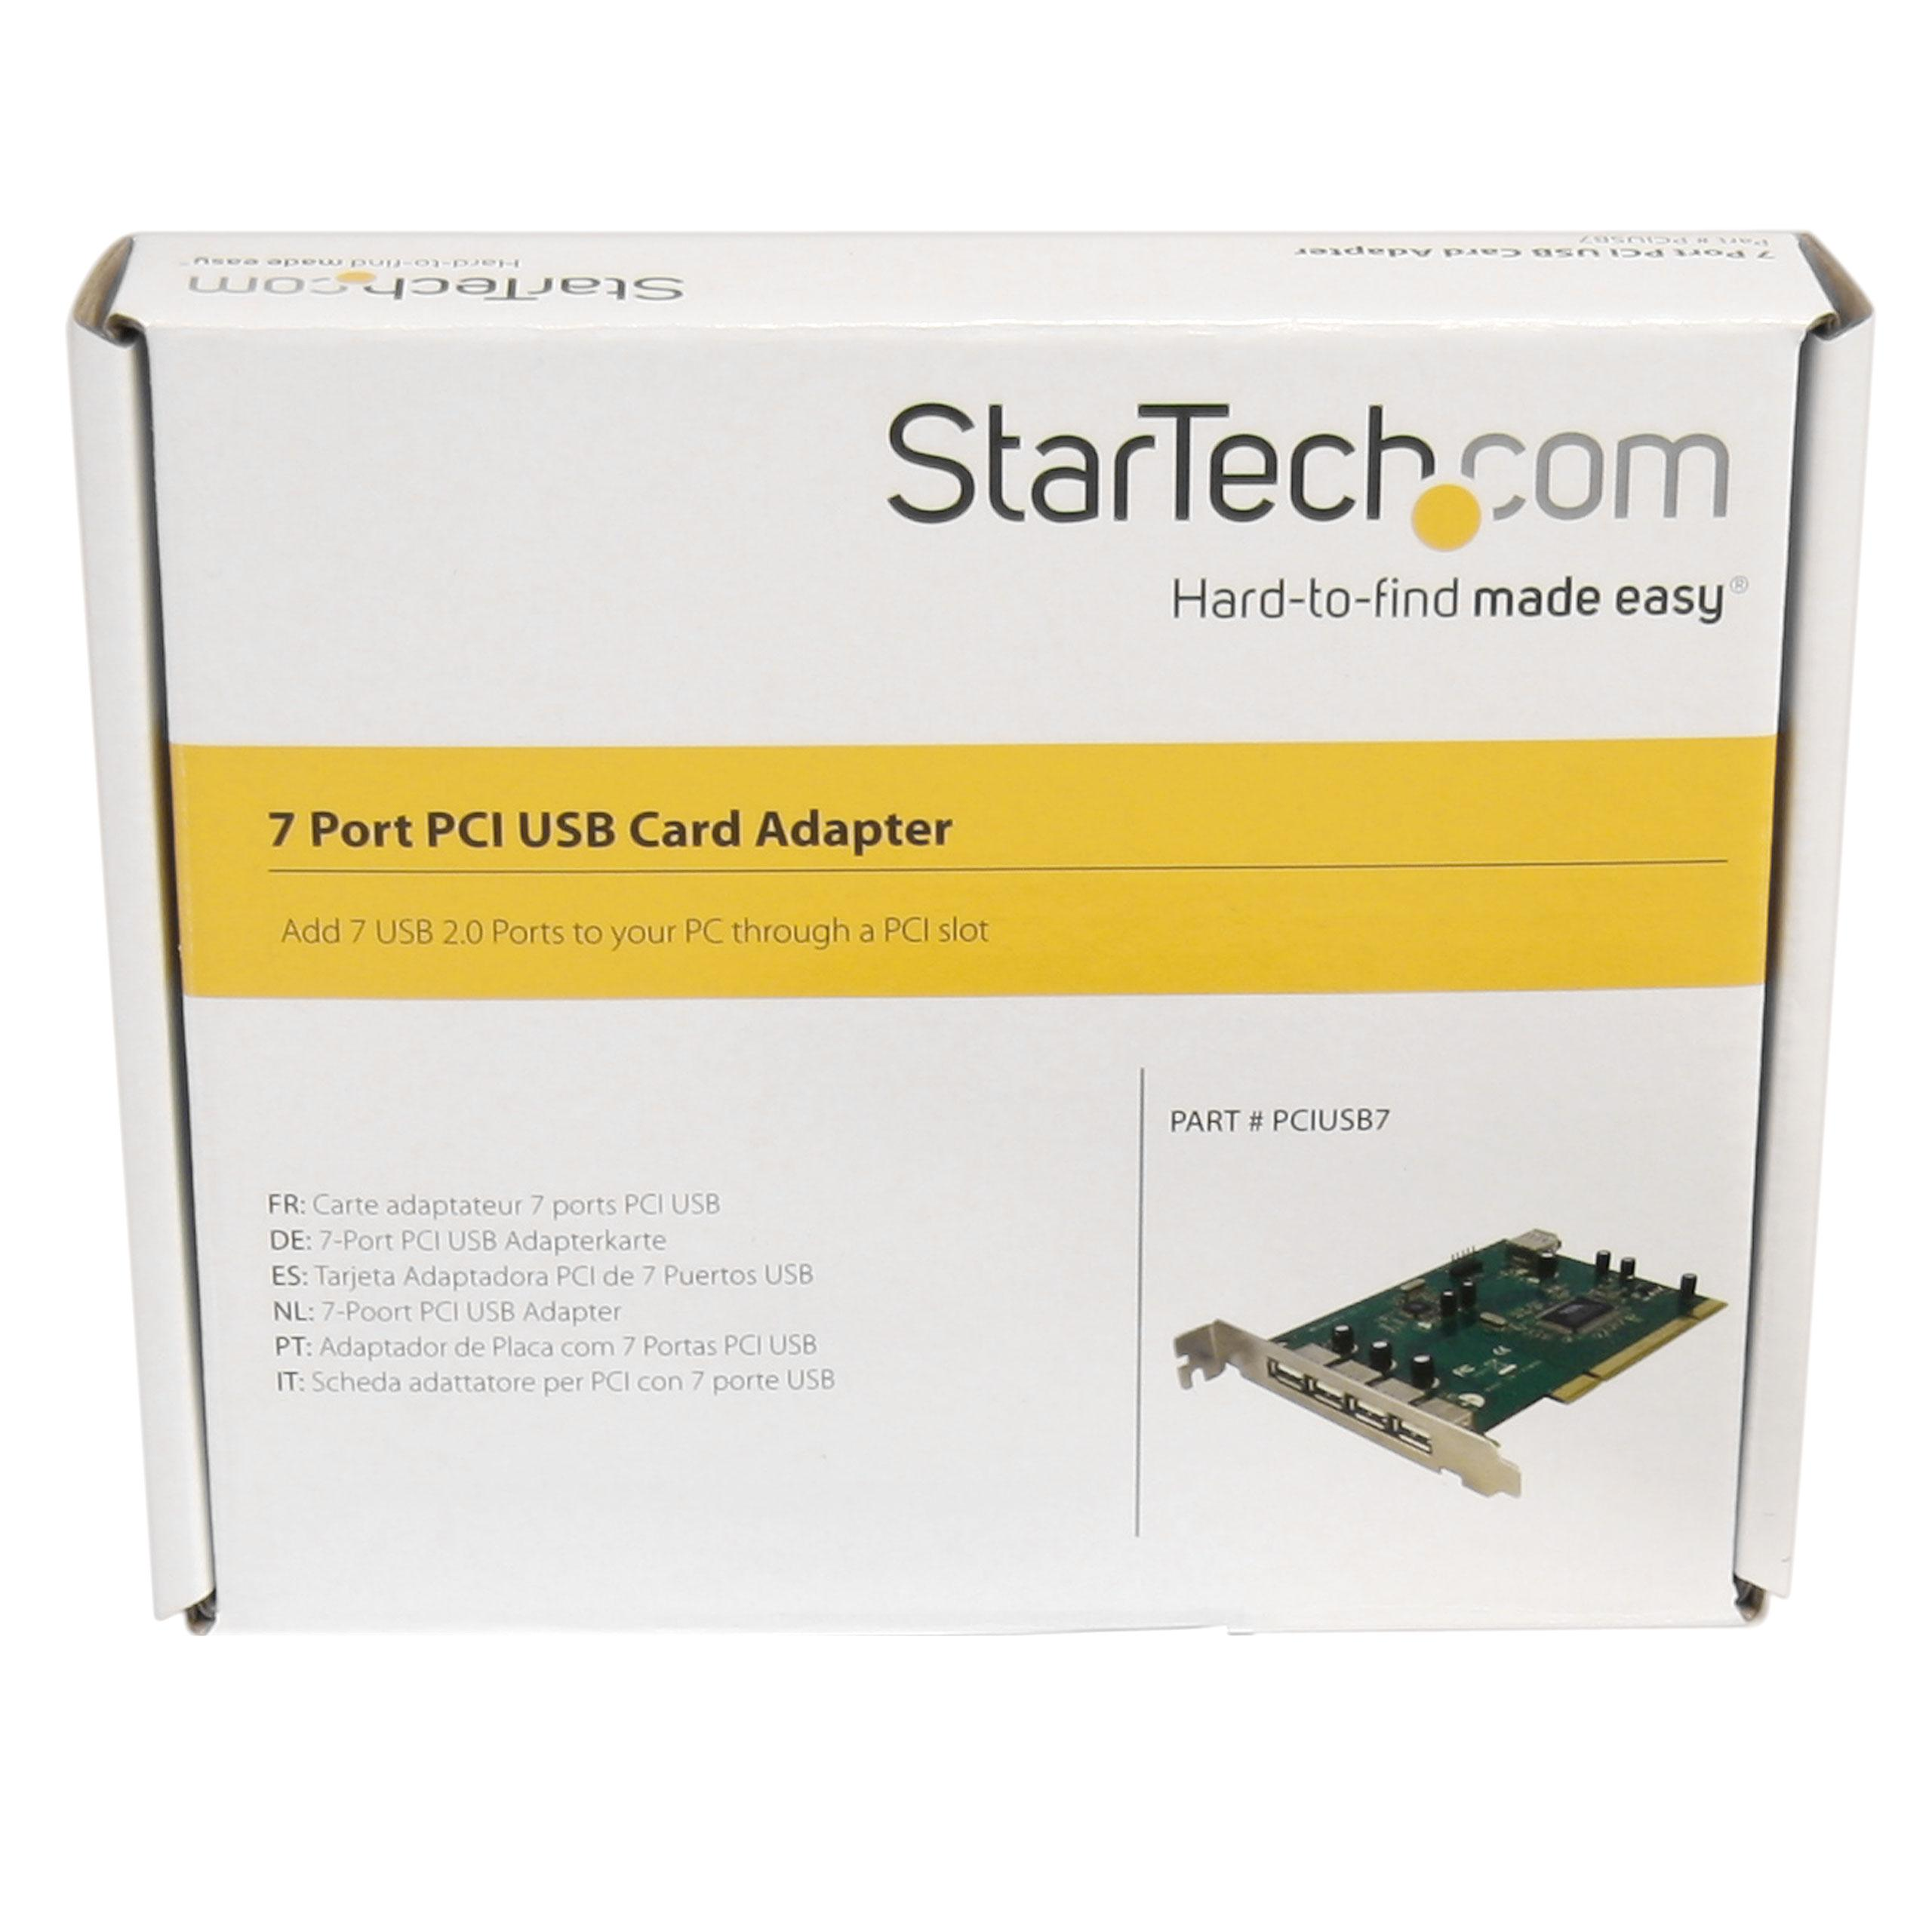 StarTech.com 7 Port PCI USB Card Adapter - PCI to USB 2.0 Controller Adapter (PCIUSB7)